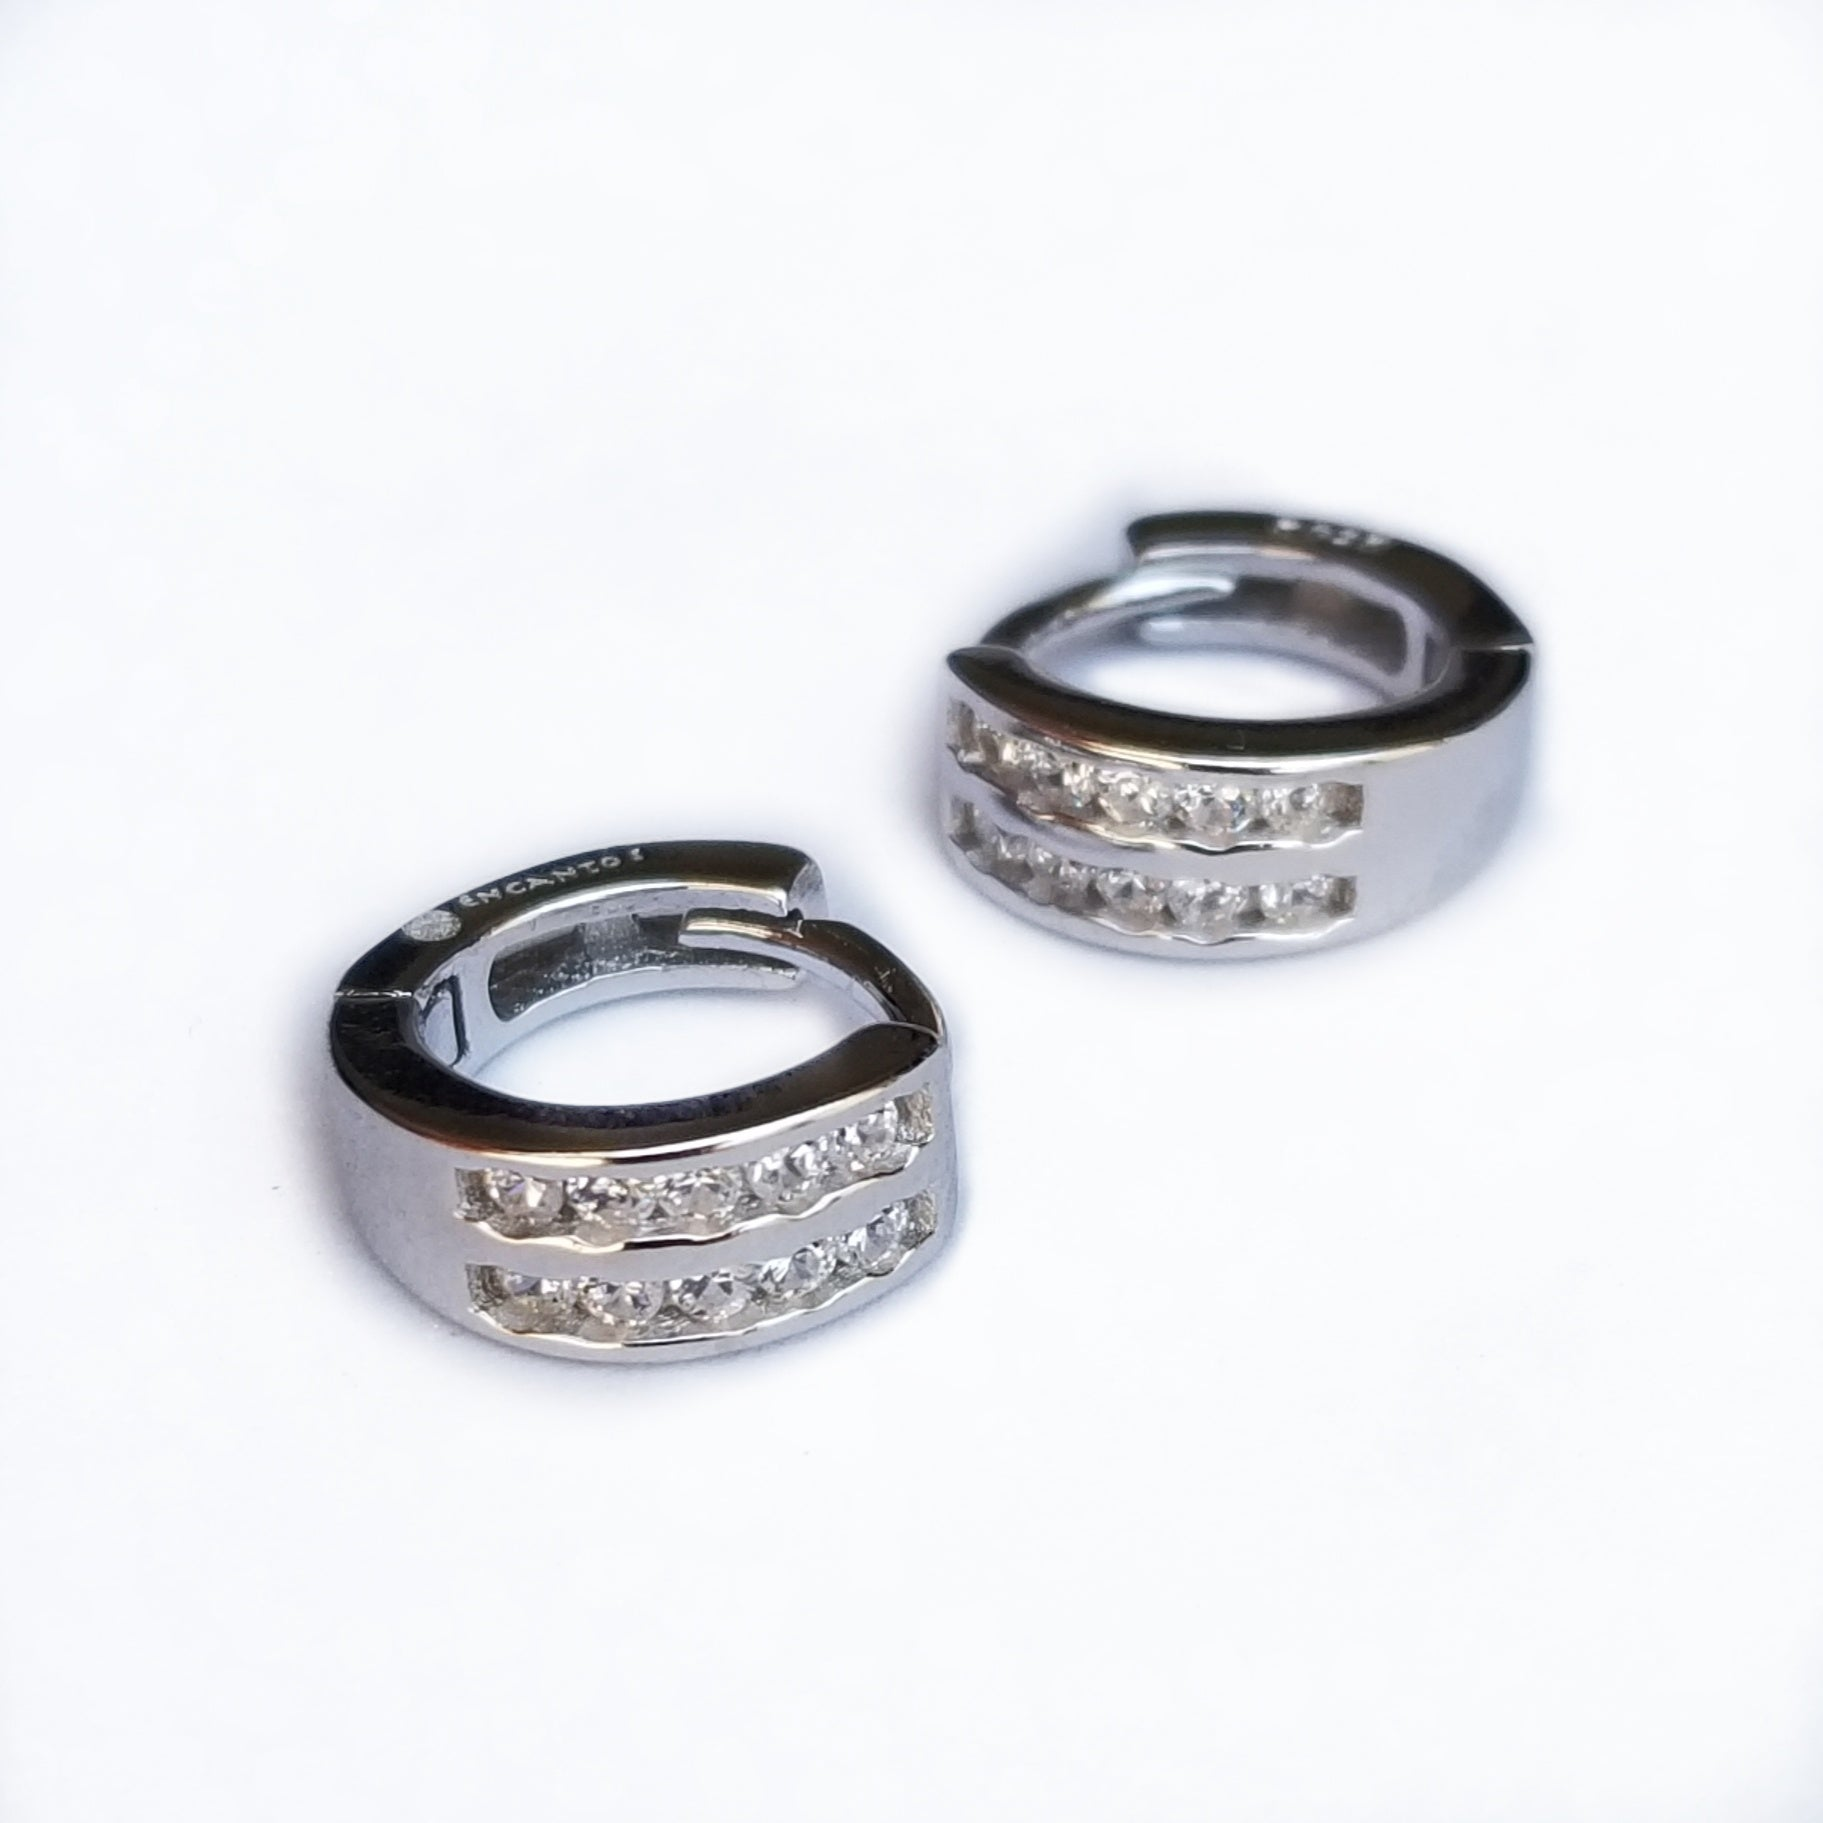 Sterling silver huggies earrings with cz gift idea